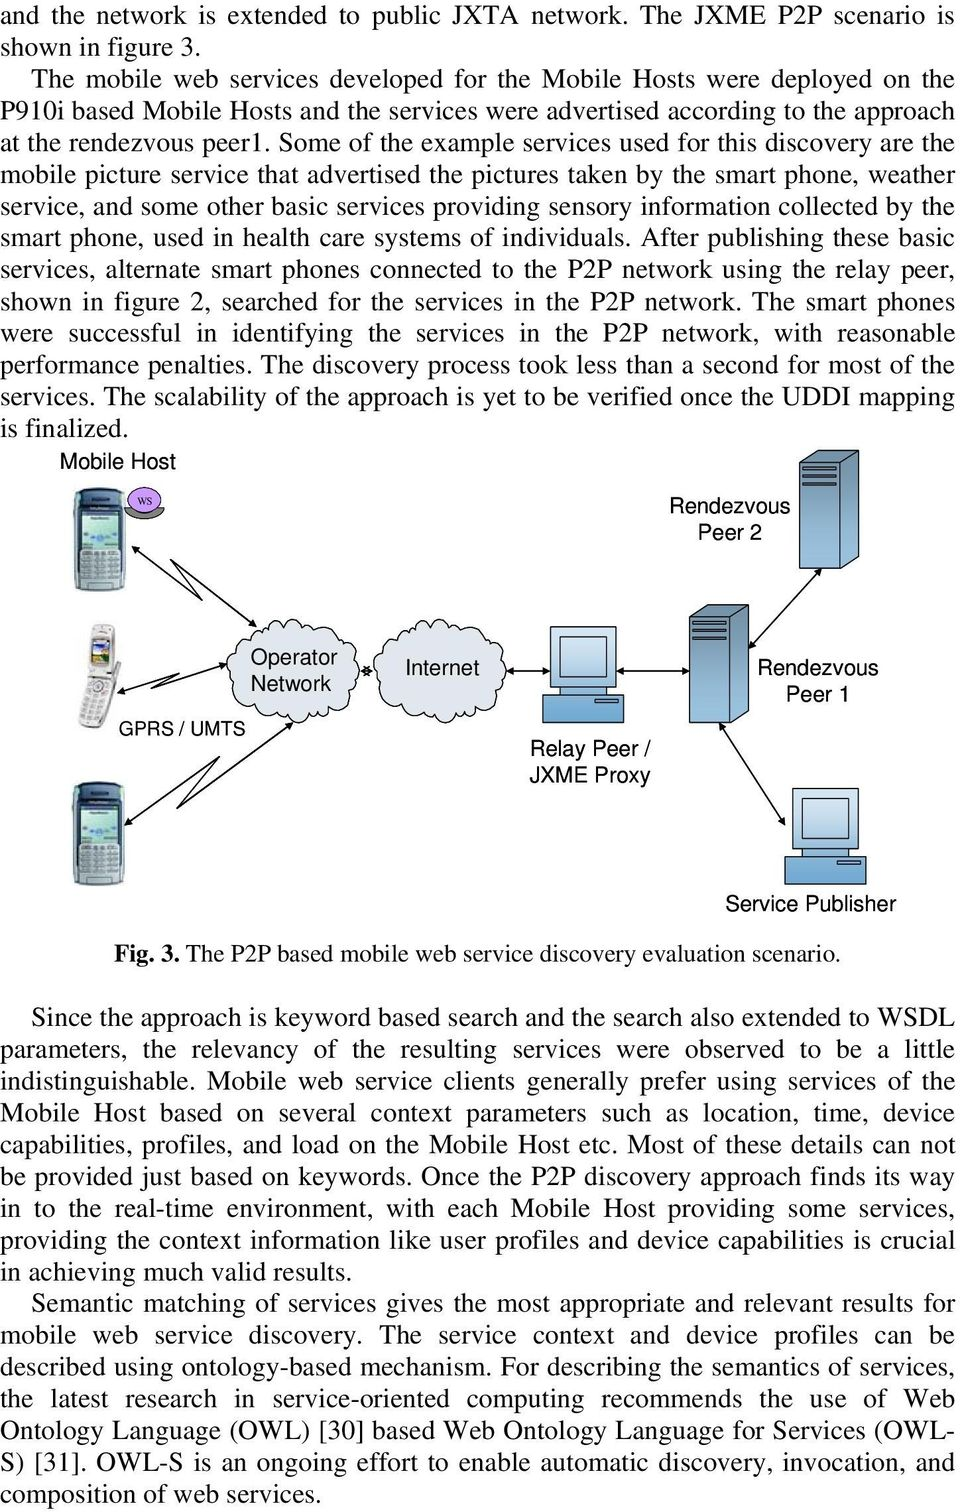 Some of the example services used for this discovery are the mobile picture service that advertised the pictures taken by the smart phone, weather service, and some other basic services providing